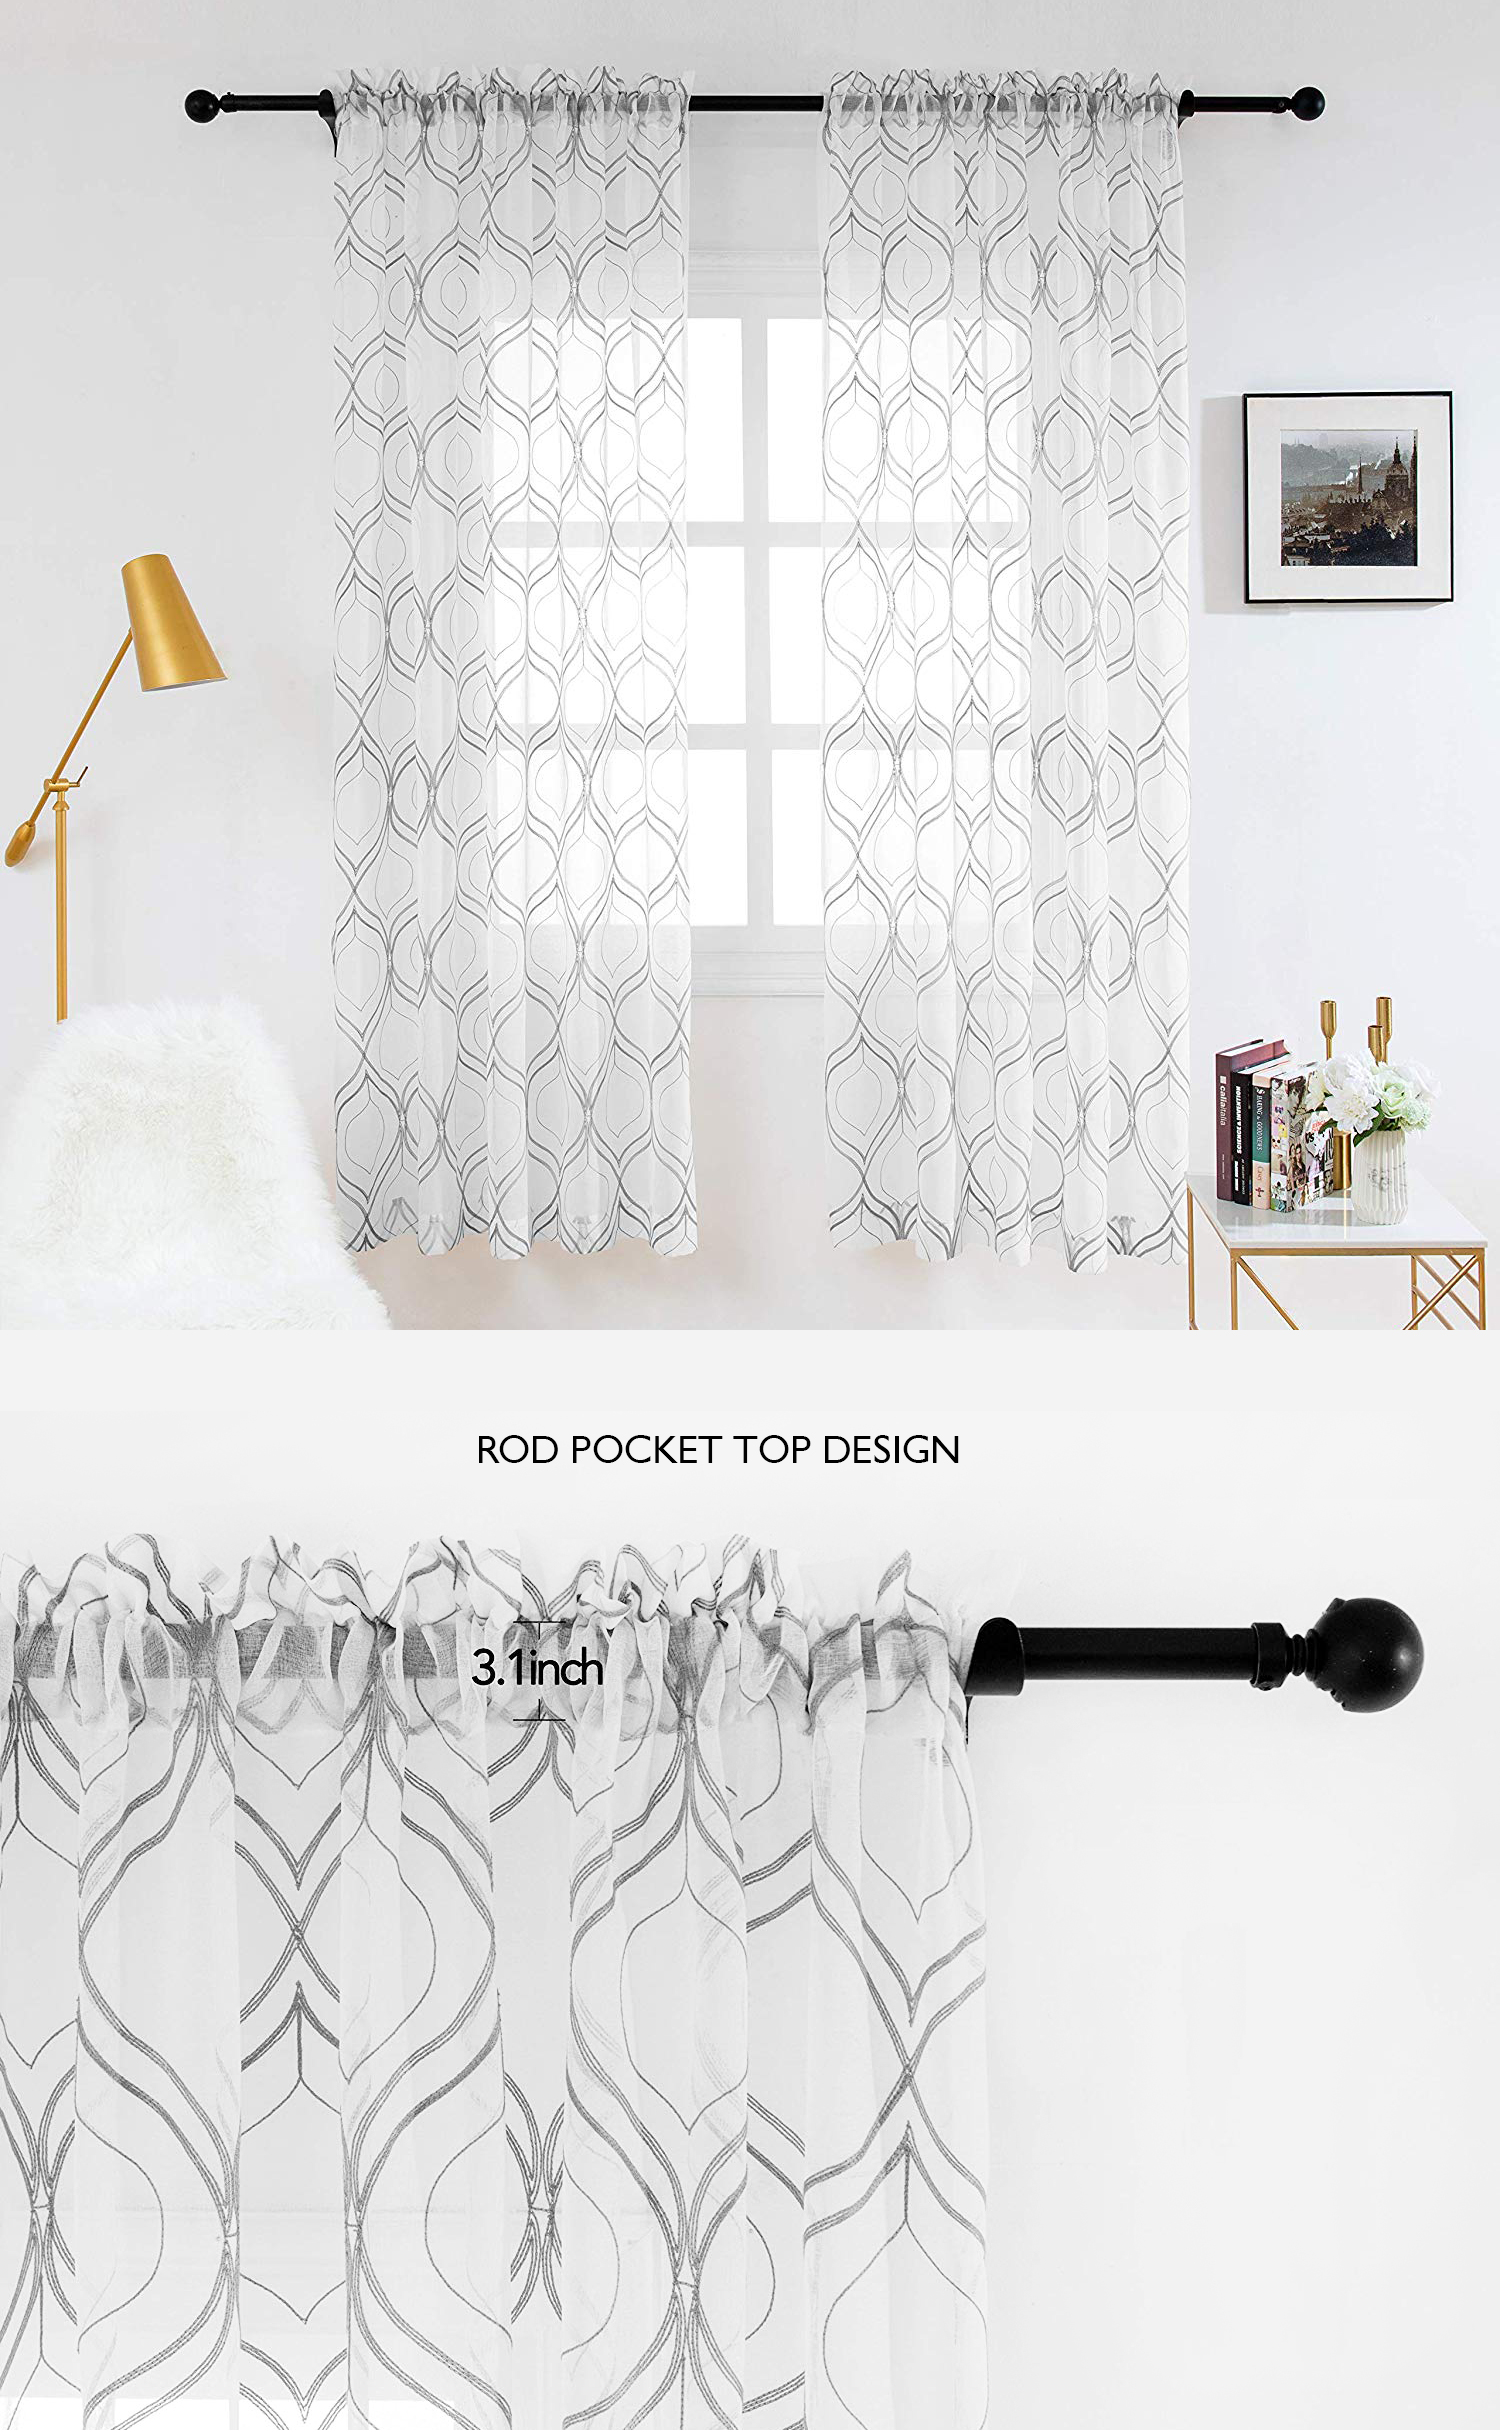 European curtains light filtering embroider dolly clover trellis ready made curtain for living room